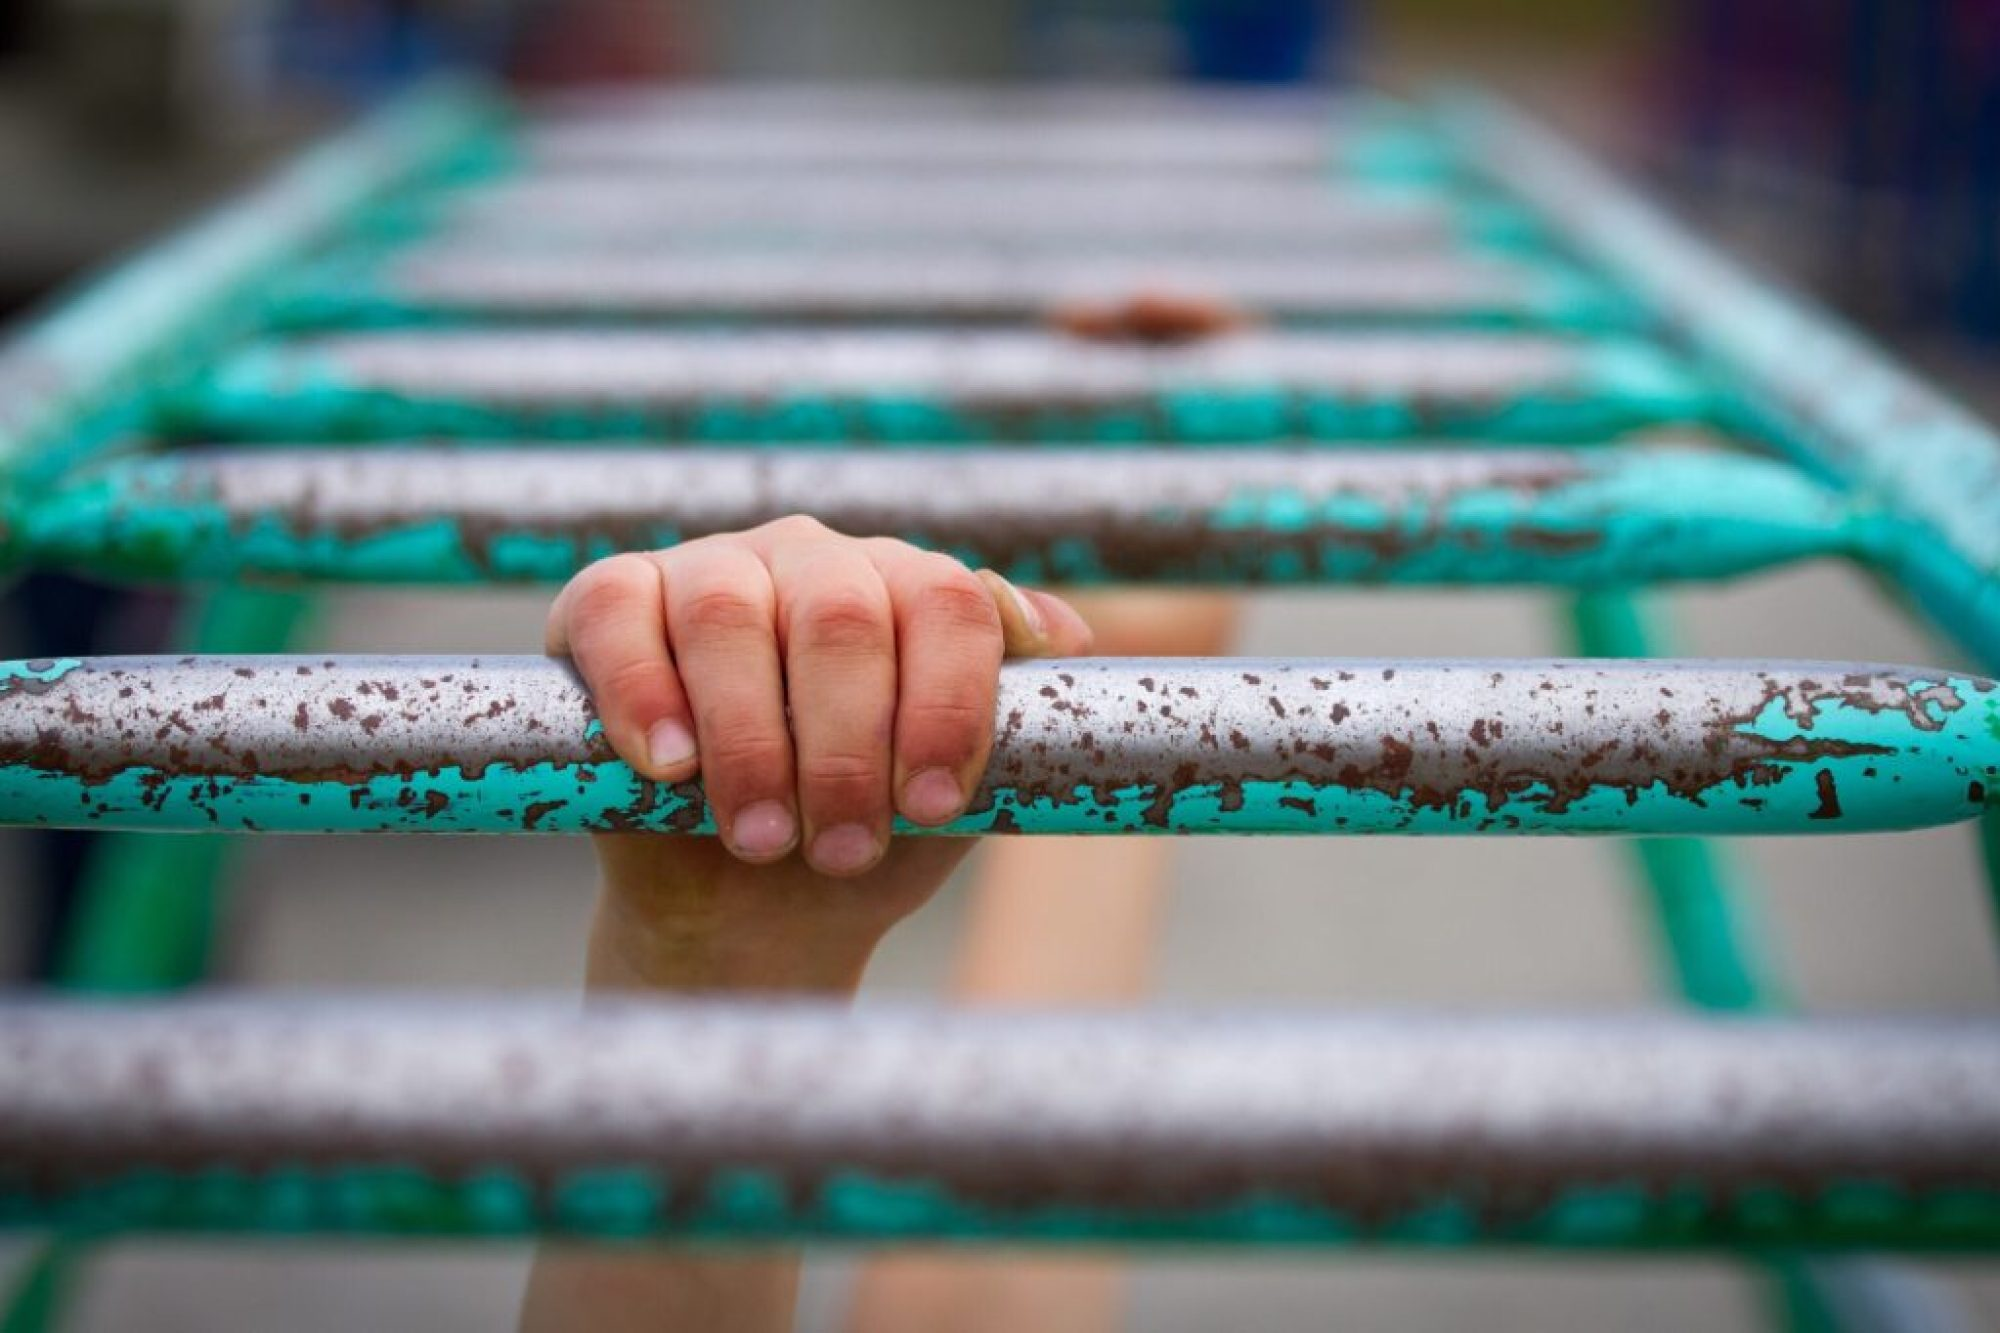 monkey bars freedom letting go